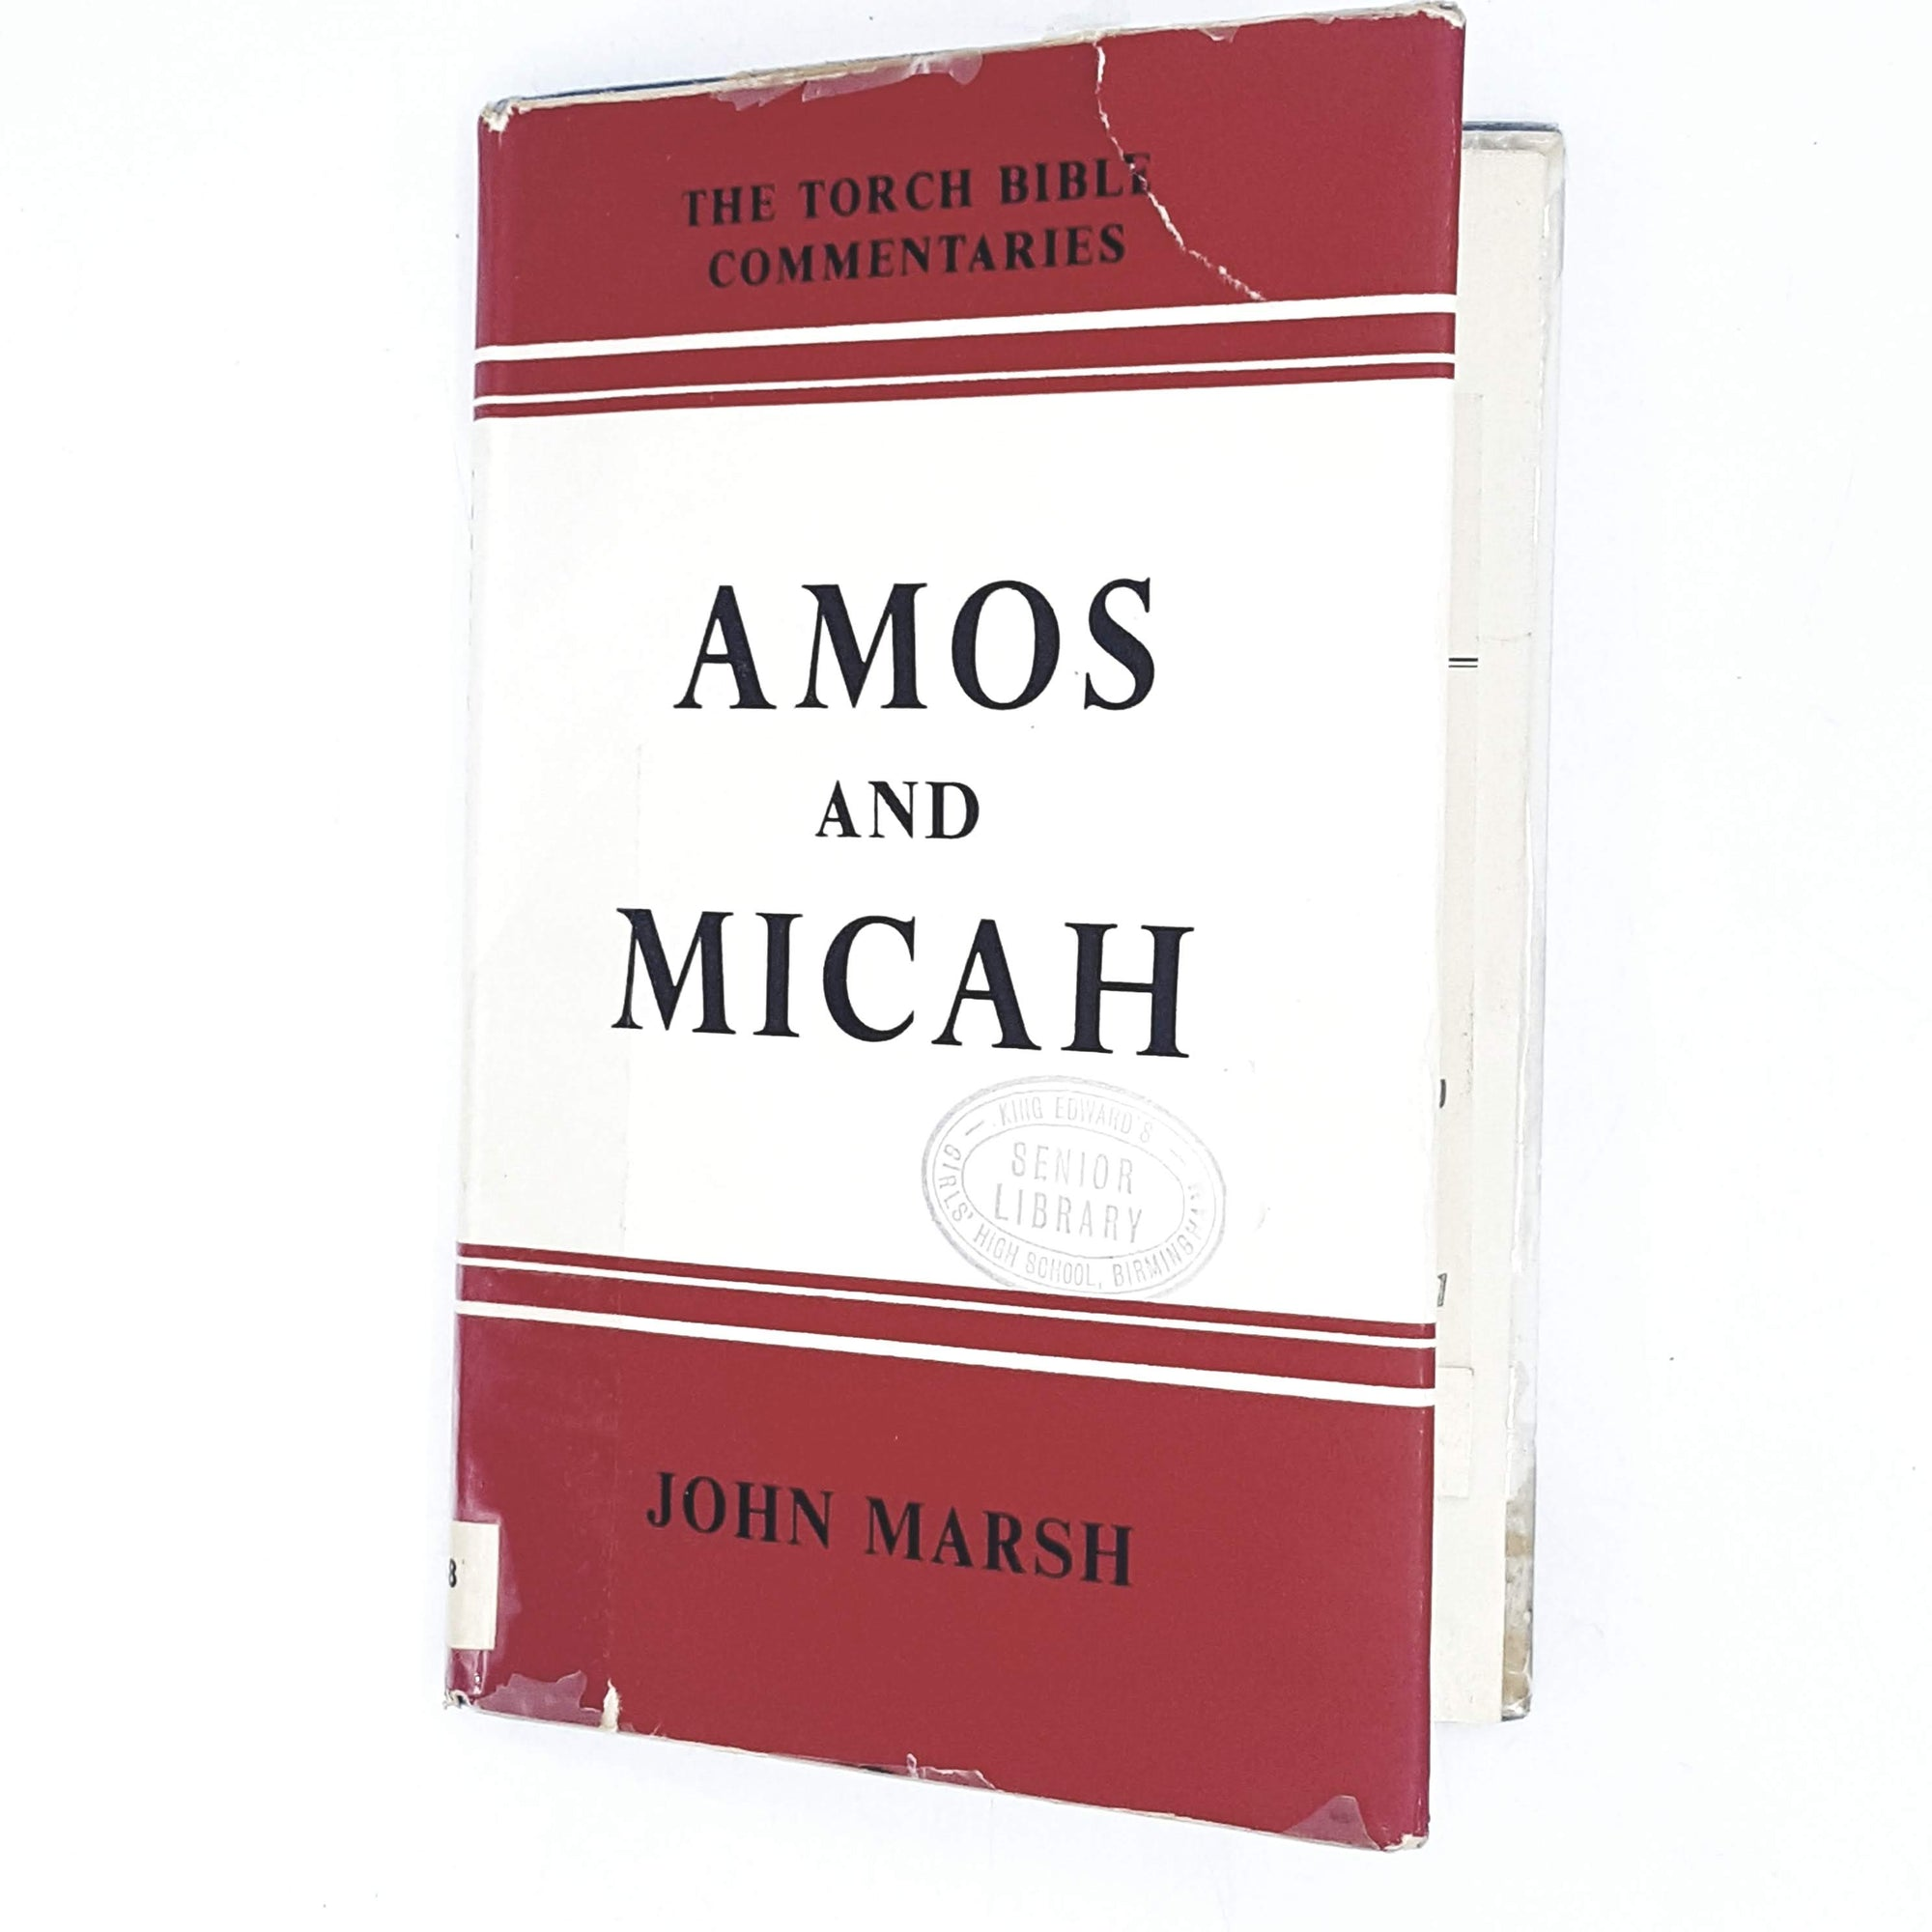 Vintage Bible Commentaries: Amos and Micah 1962